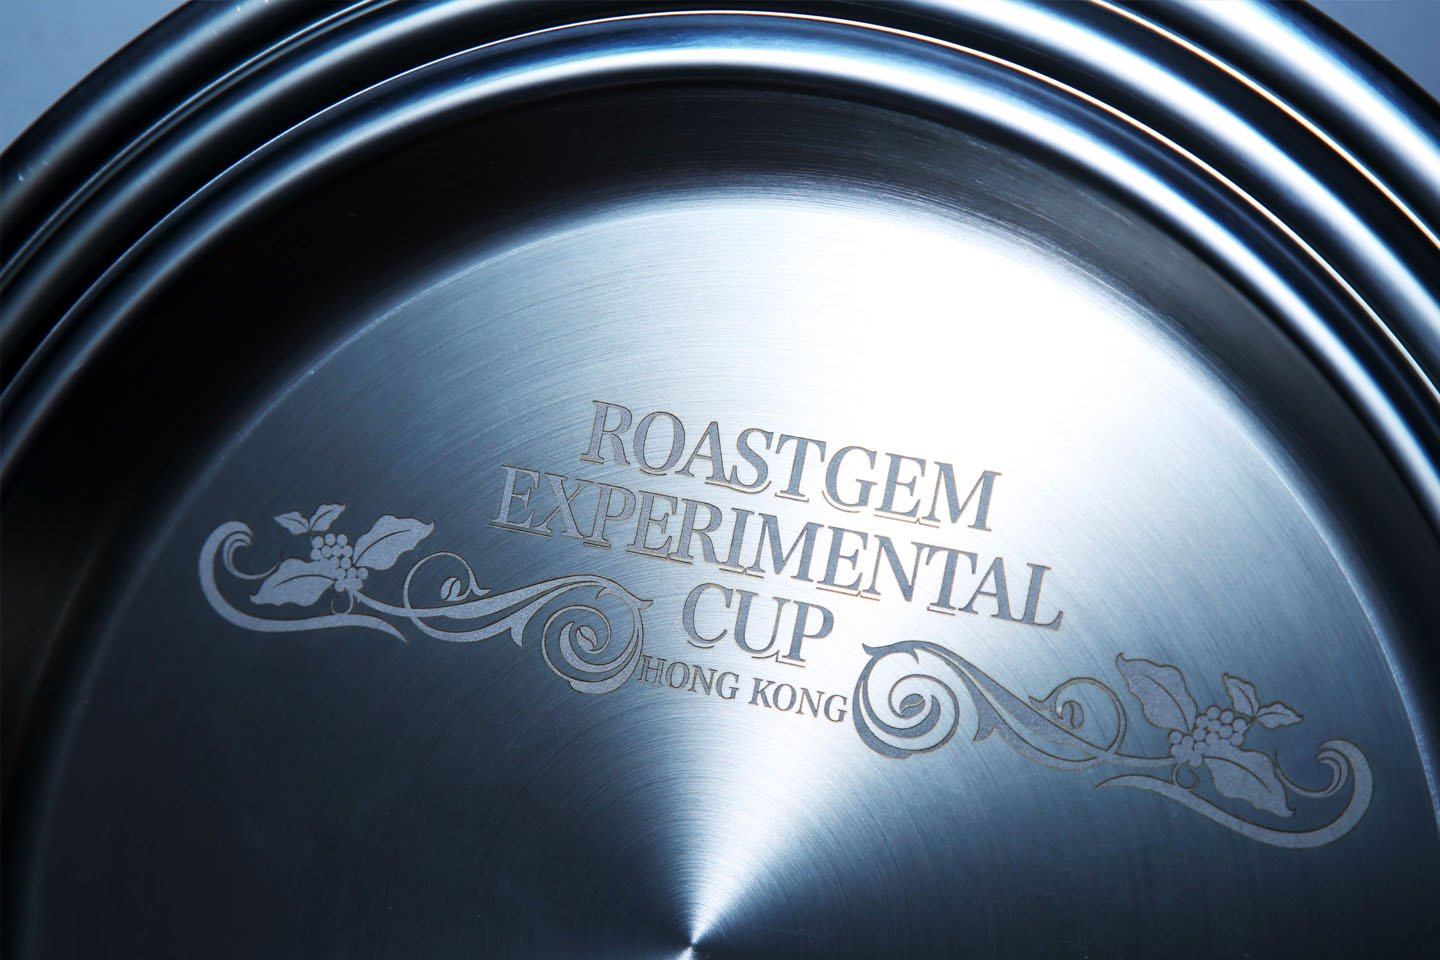 Roastgem Experimental Cup